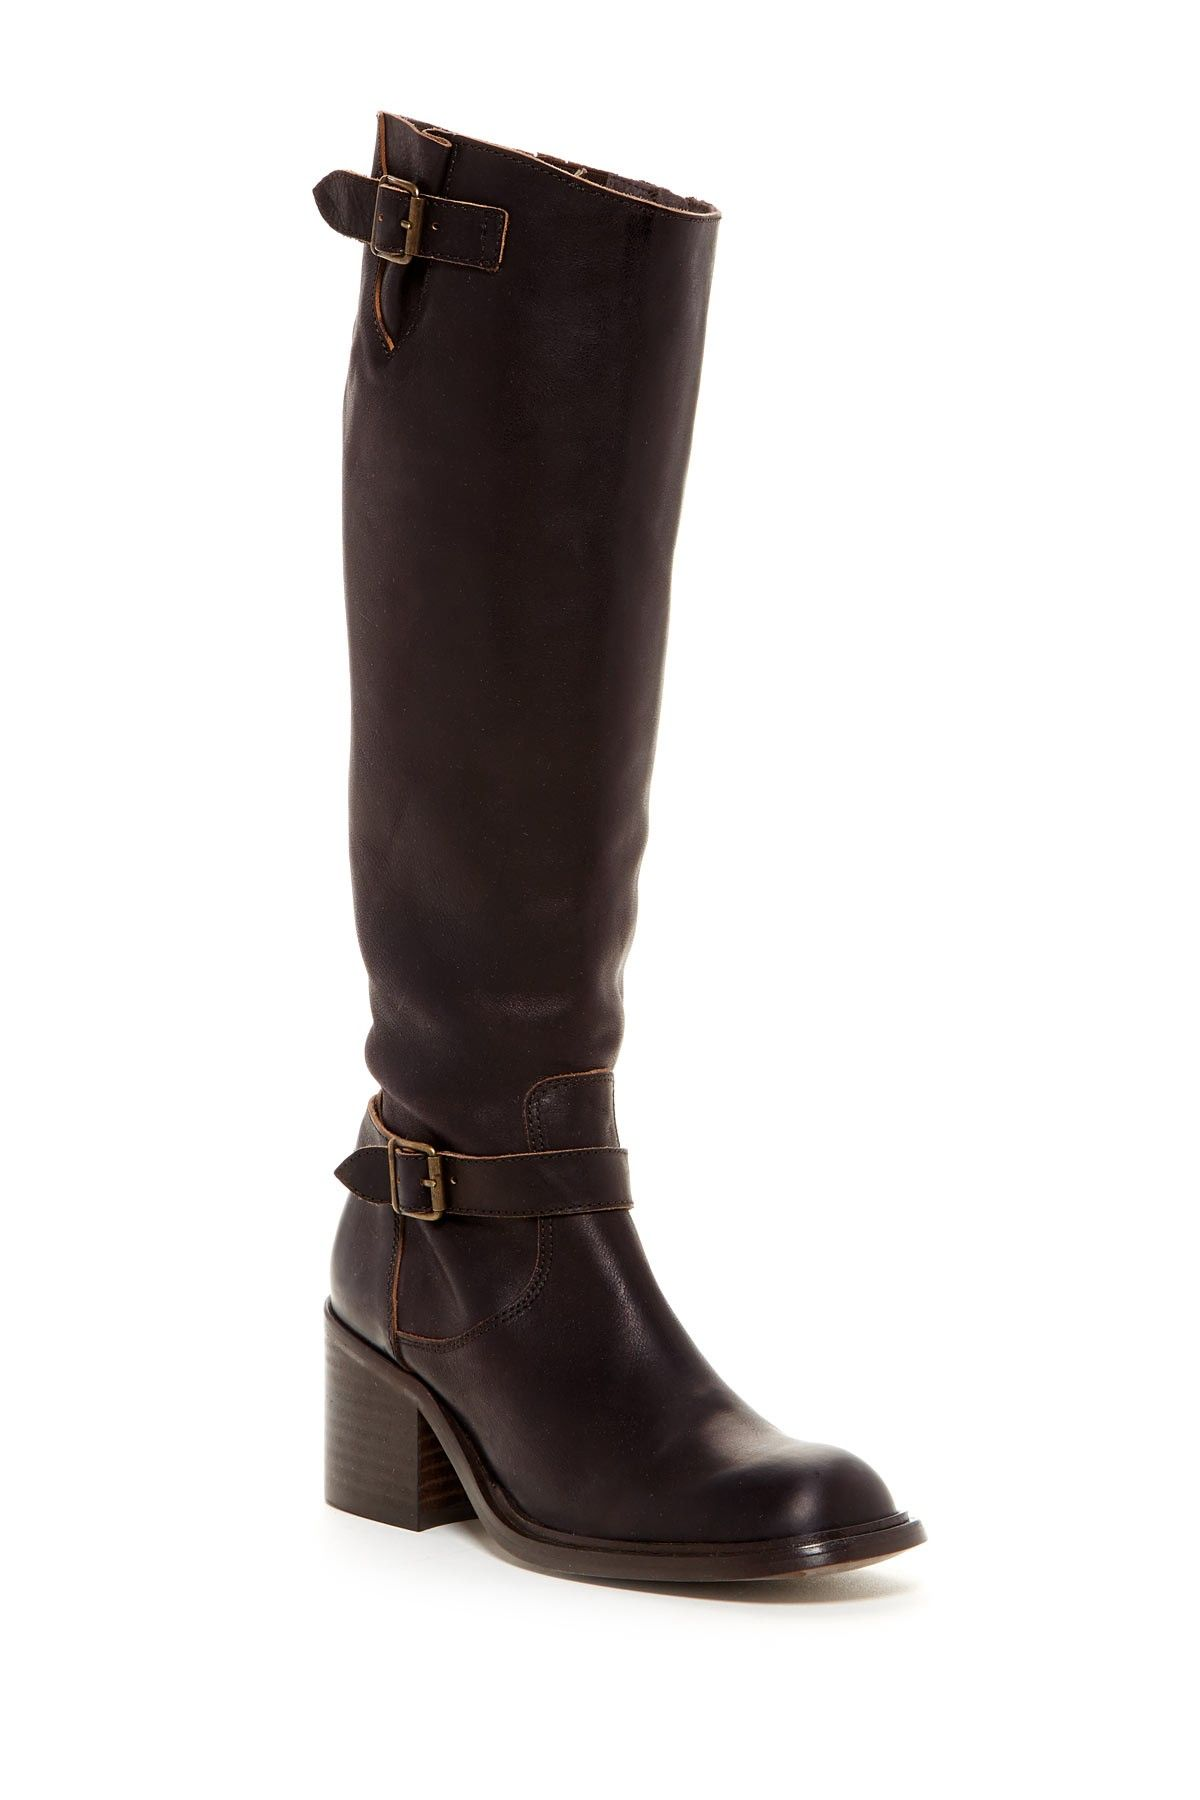 Jeffrey campbell tall dress boot tall dresses nordstrom and